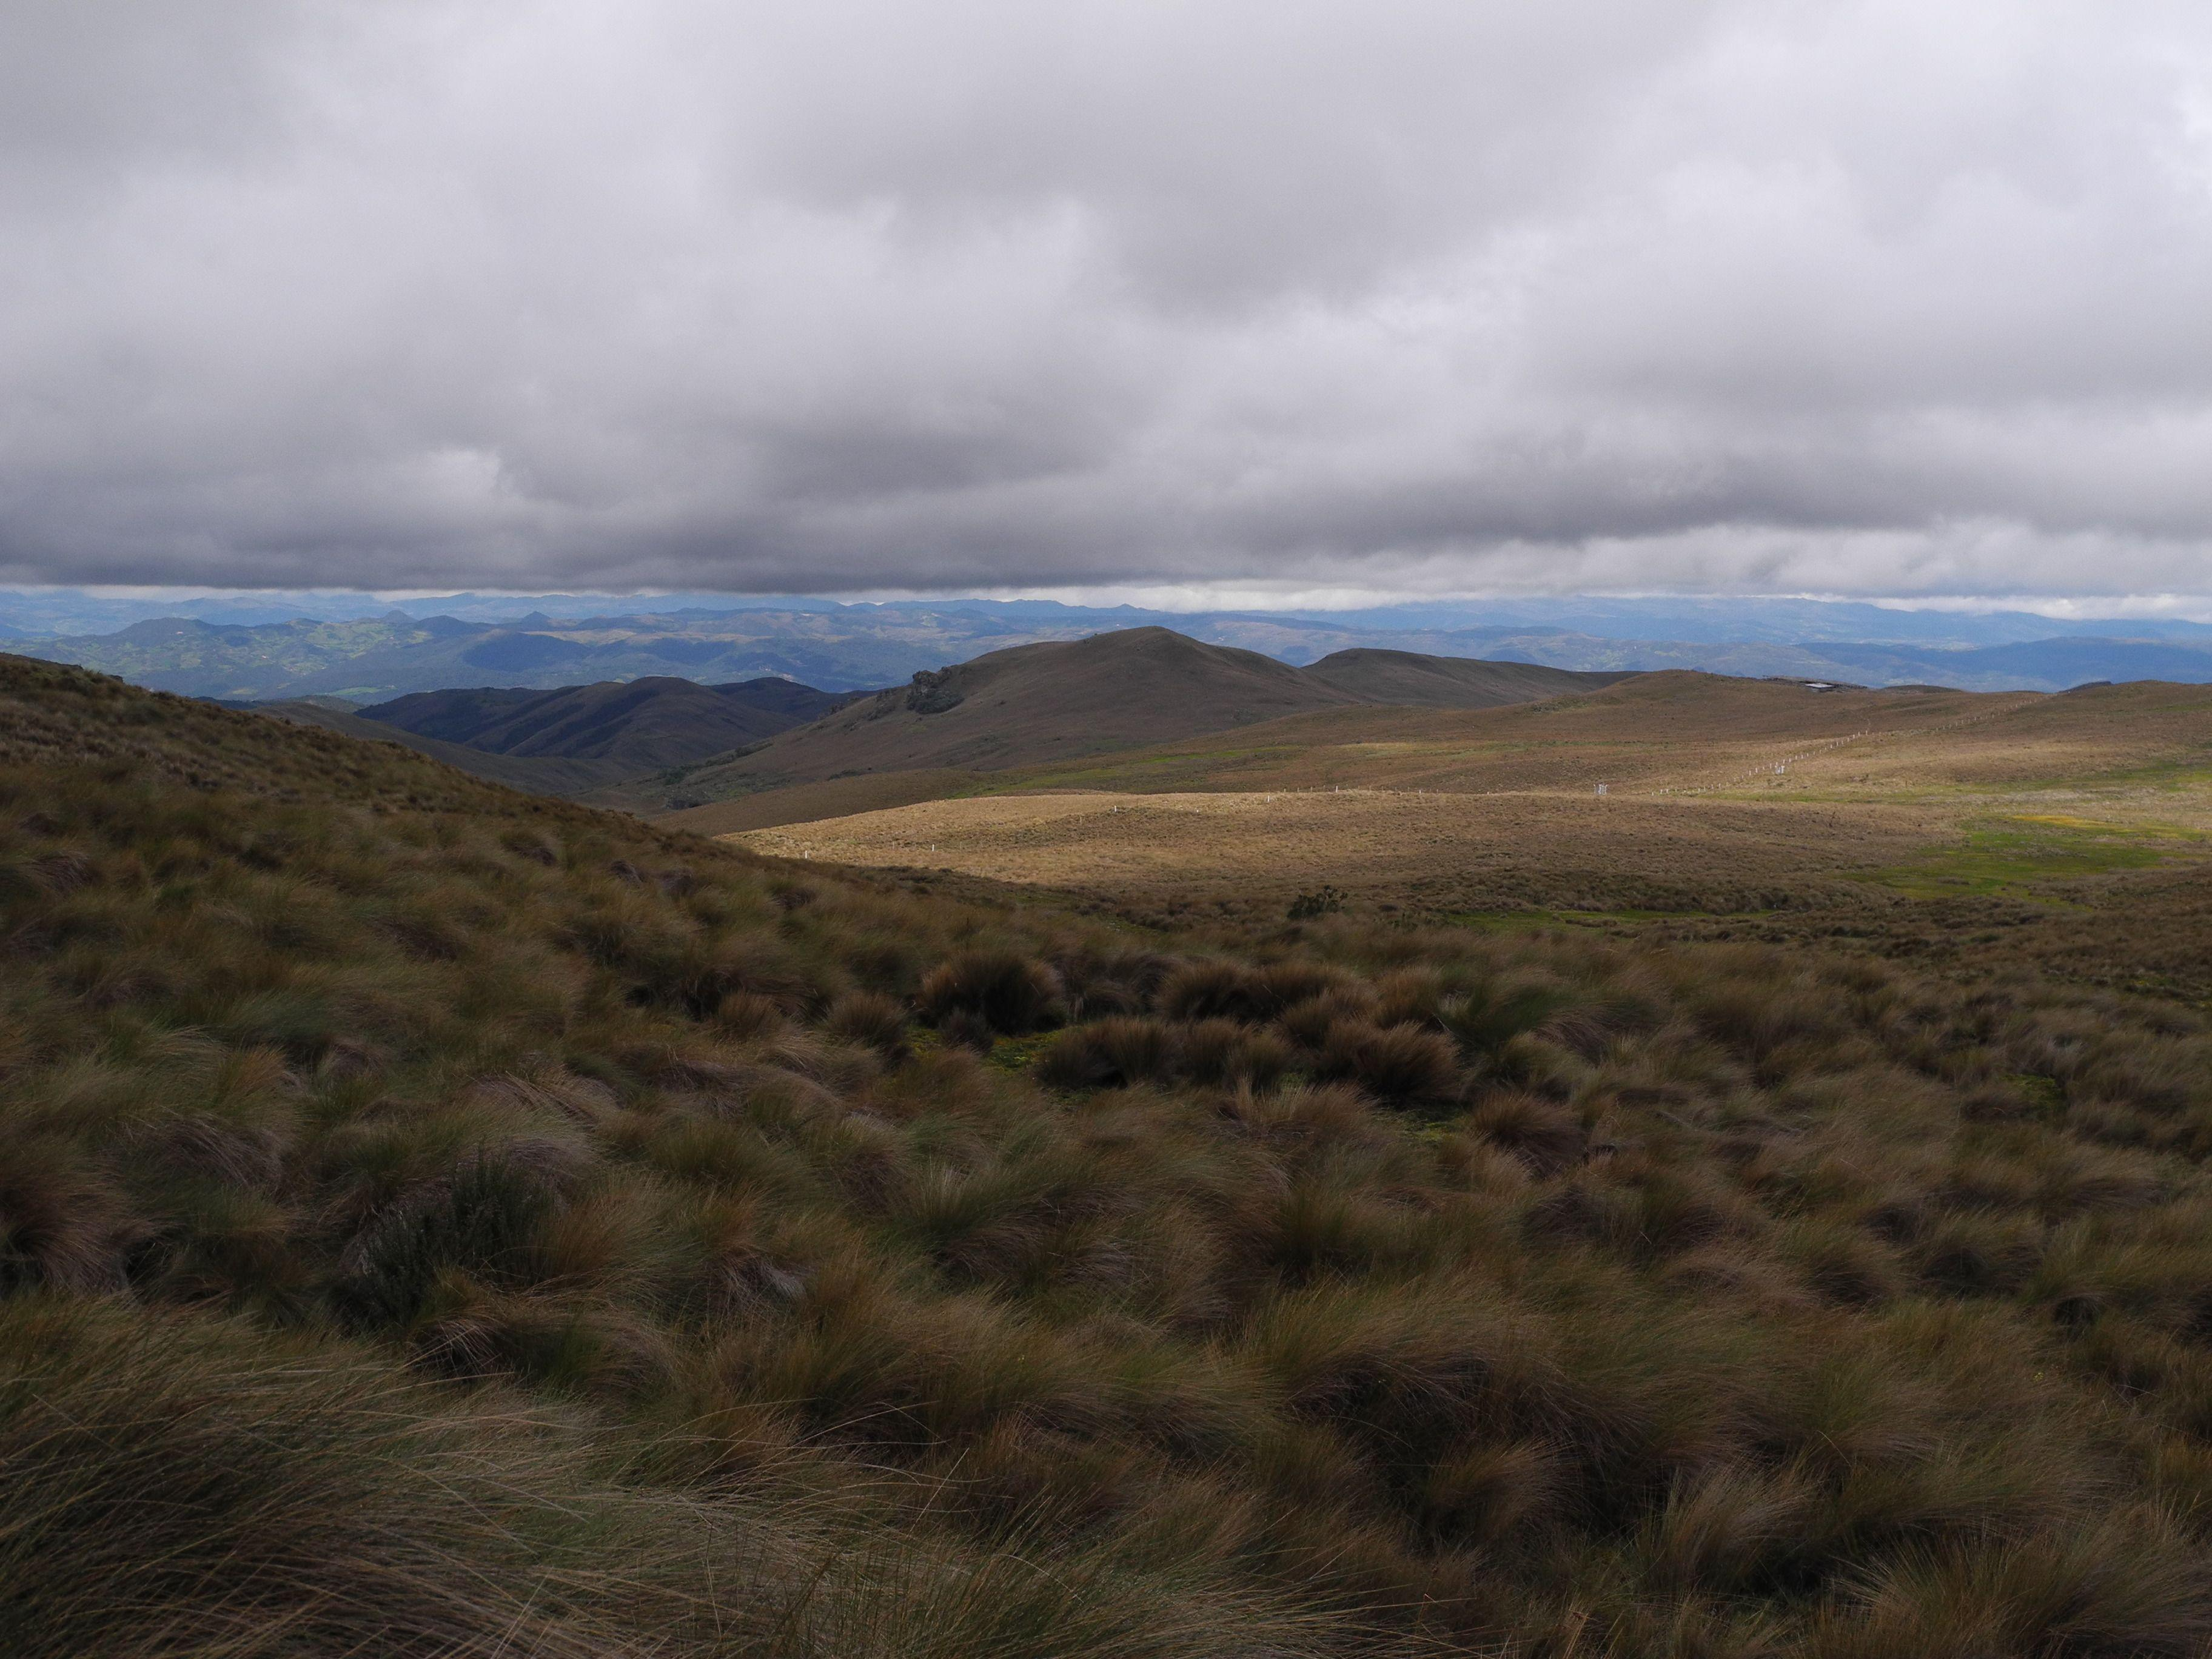 High altitude wetlands in the area of Kimsacocha, province of Azuay